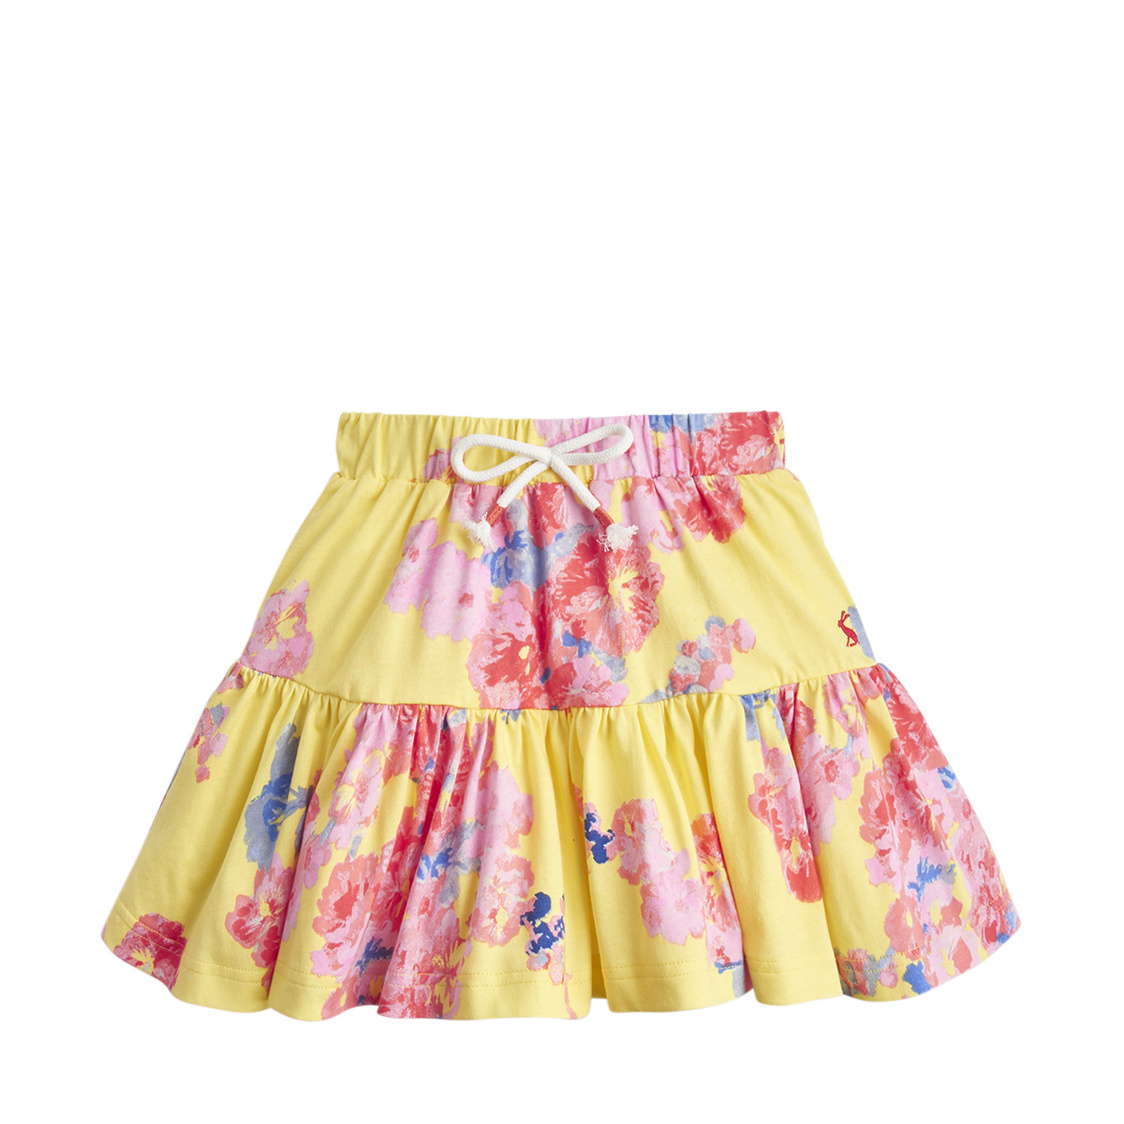 Liza Jersey Printed Skirt 1-6 Yr Yellow Floral